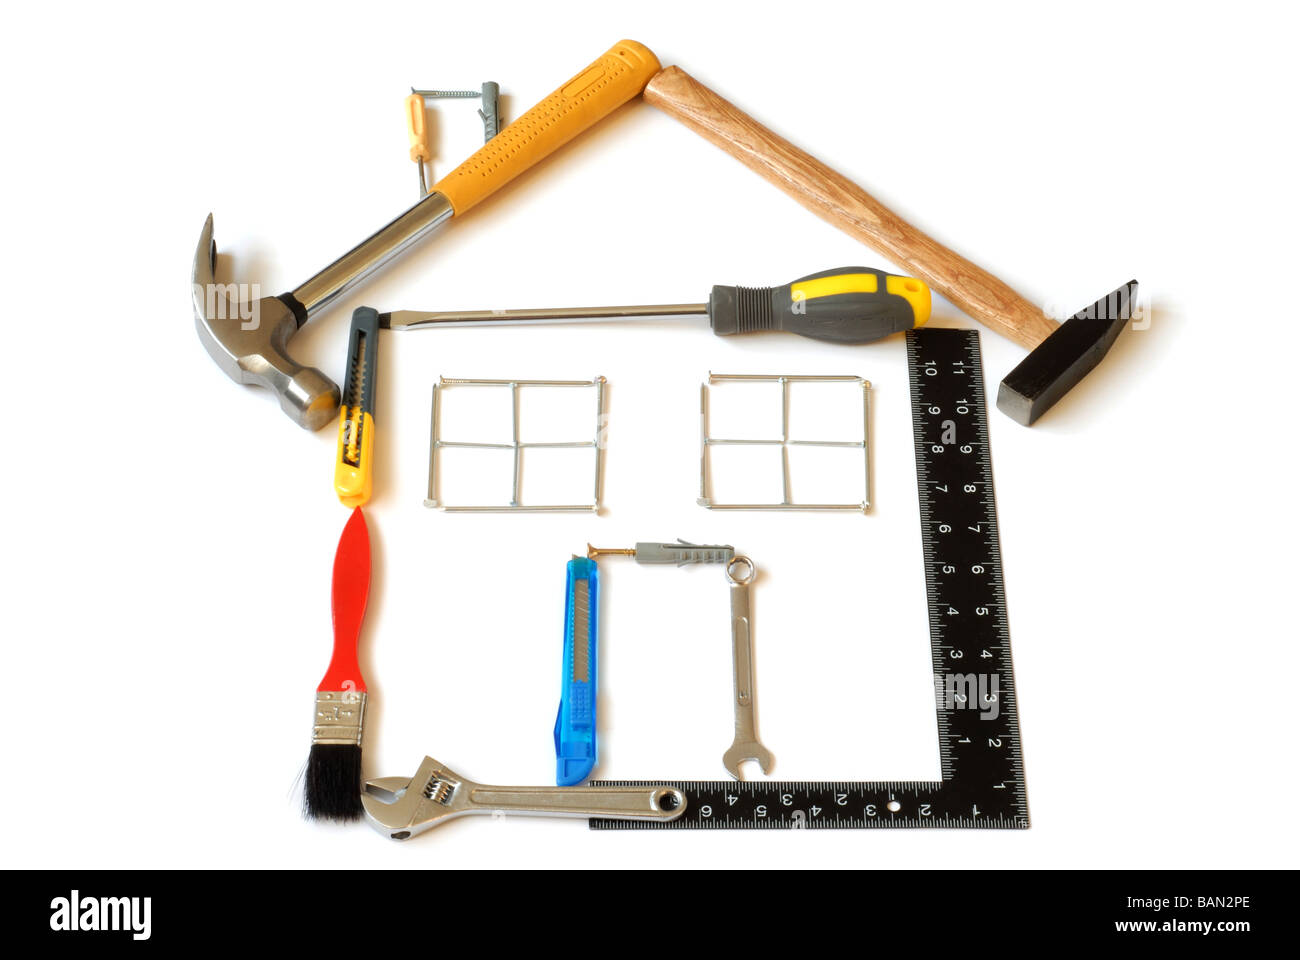 Outils maison Photo Stock